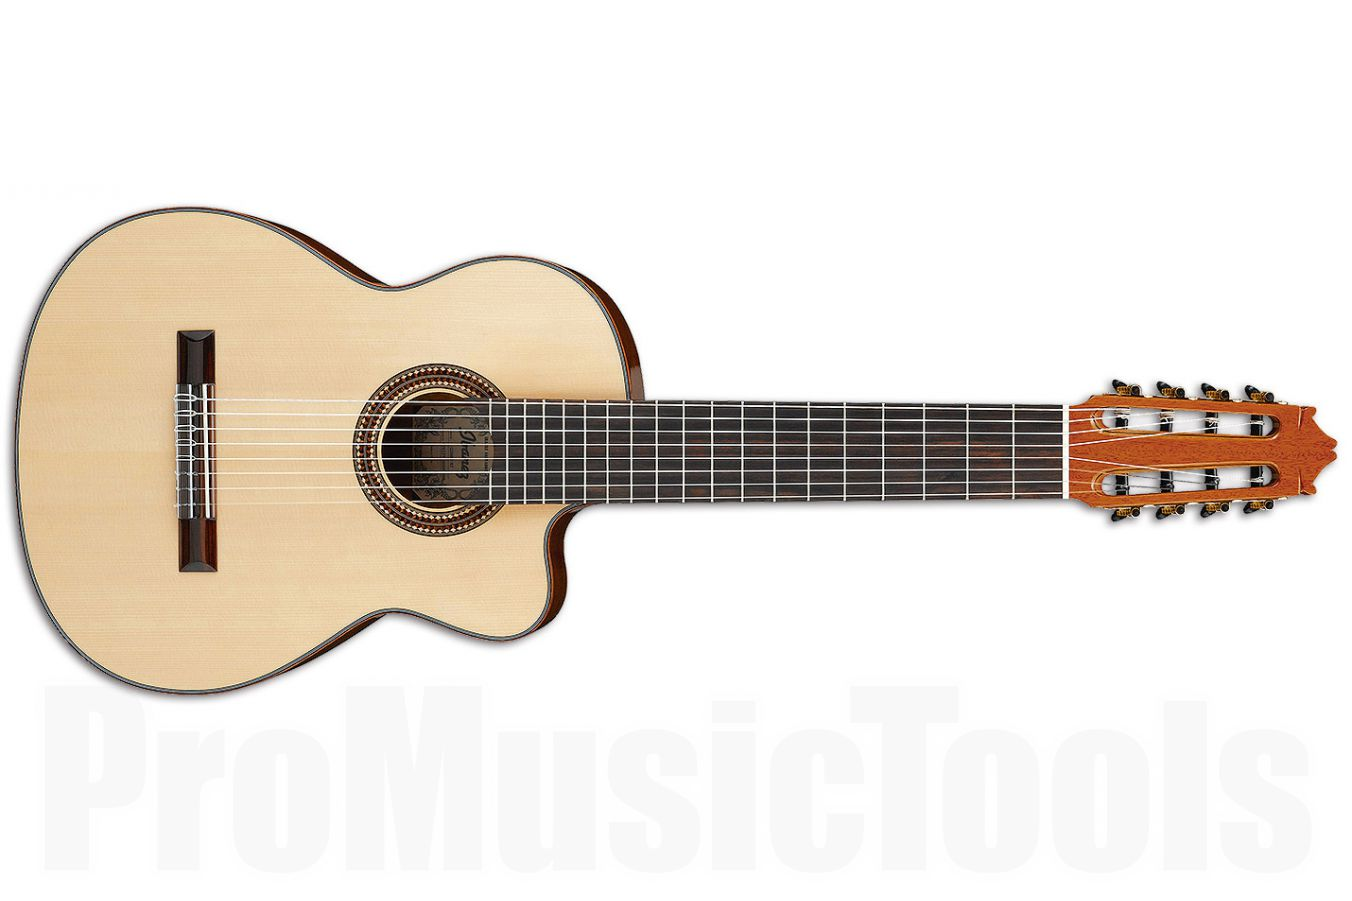 Ibanez G208CWC NT - 8-string classical guitar